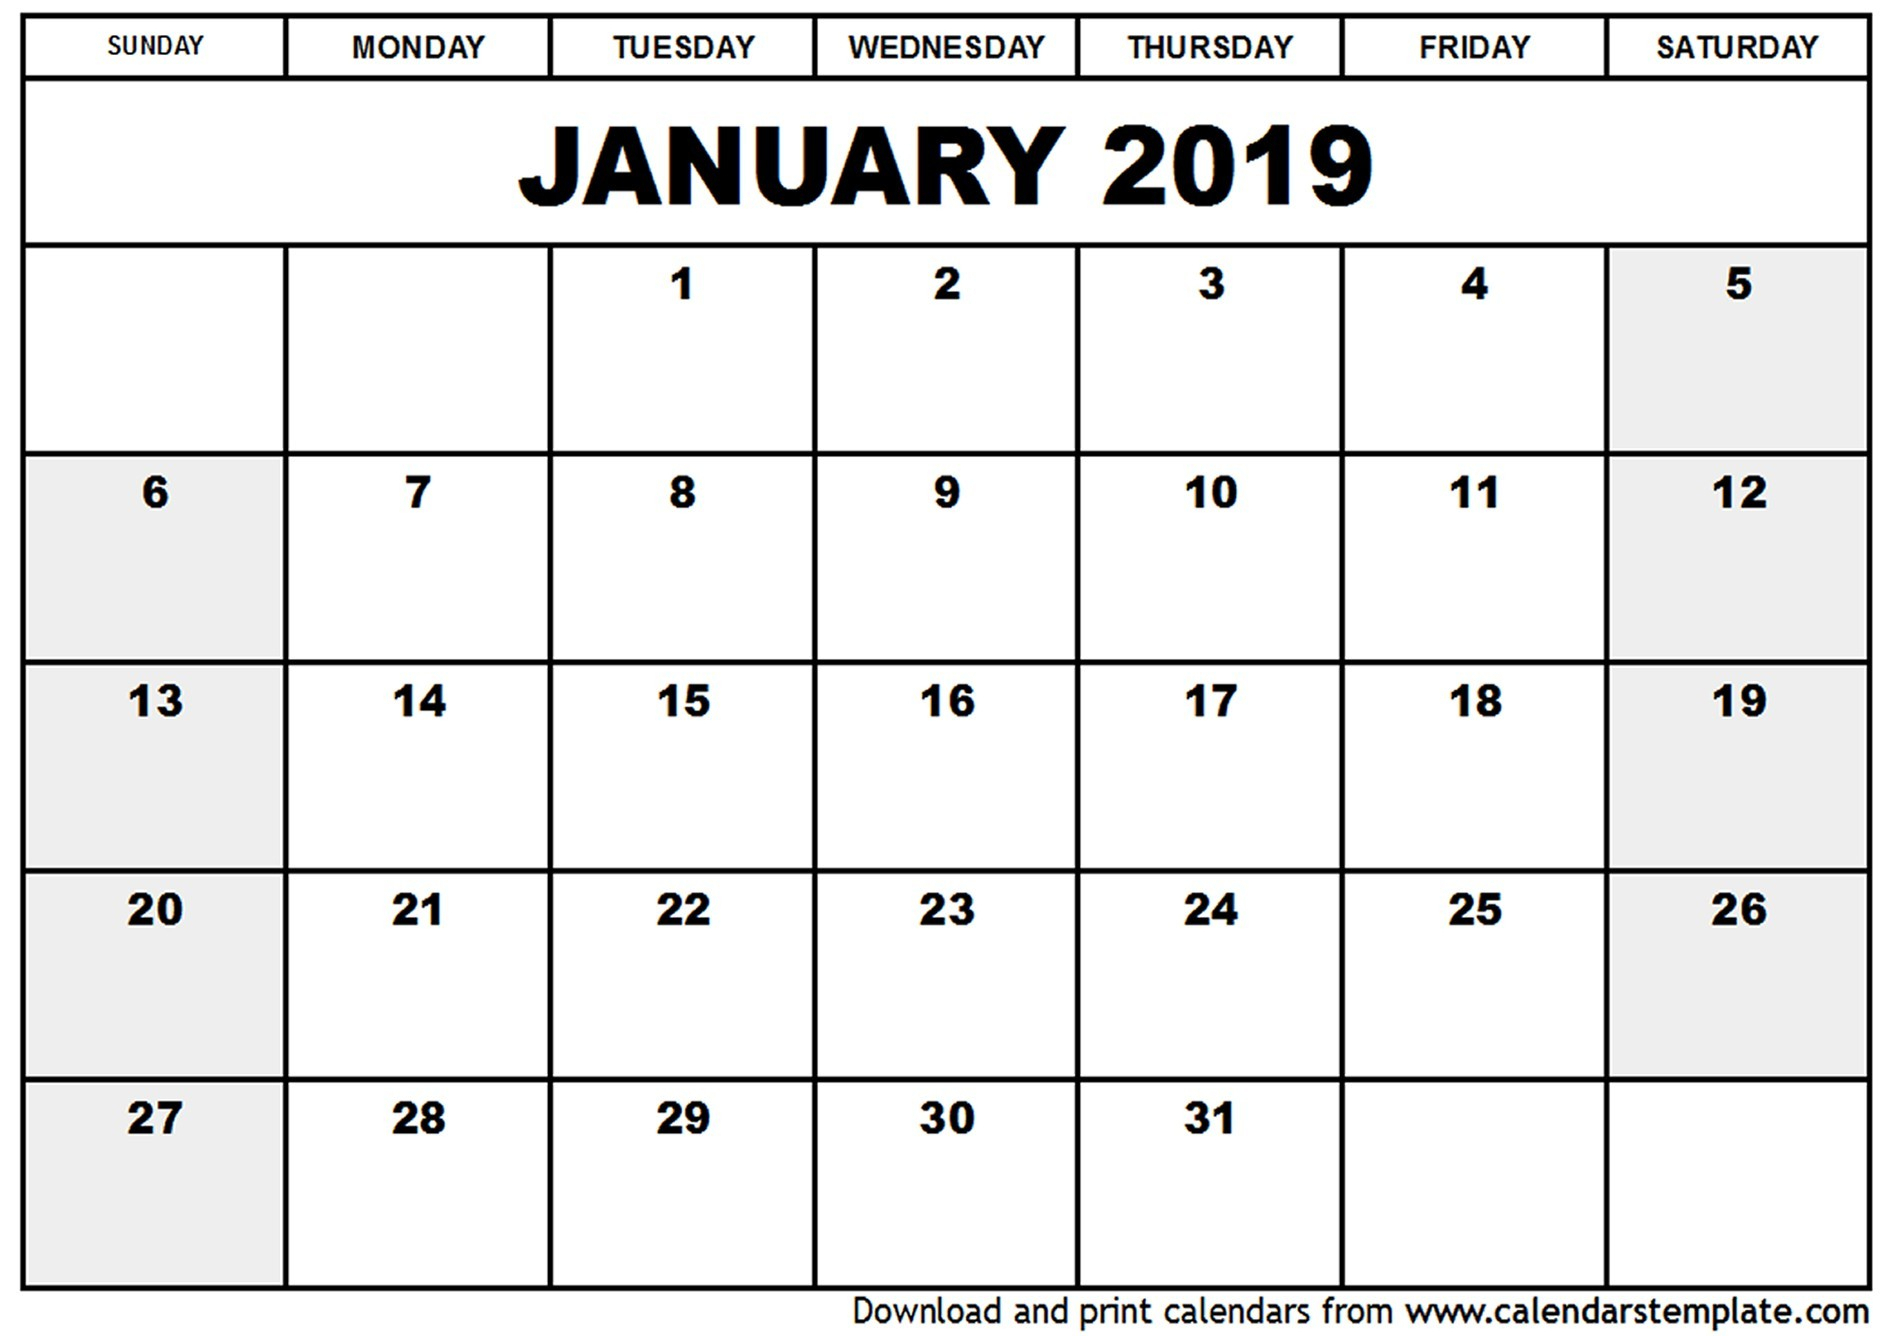 Large Blank Monthly Calendars January 2019 Printable   Calendar Template within Large Blank Monthly Calendars January Printable